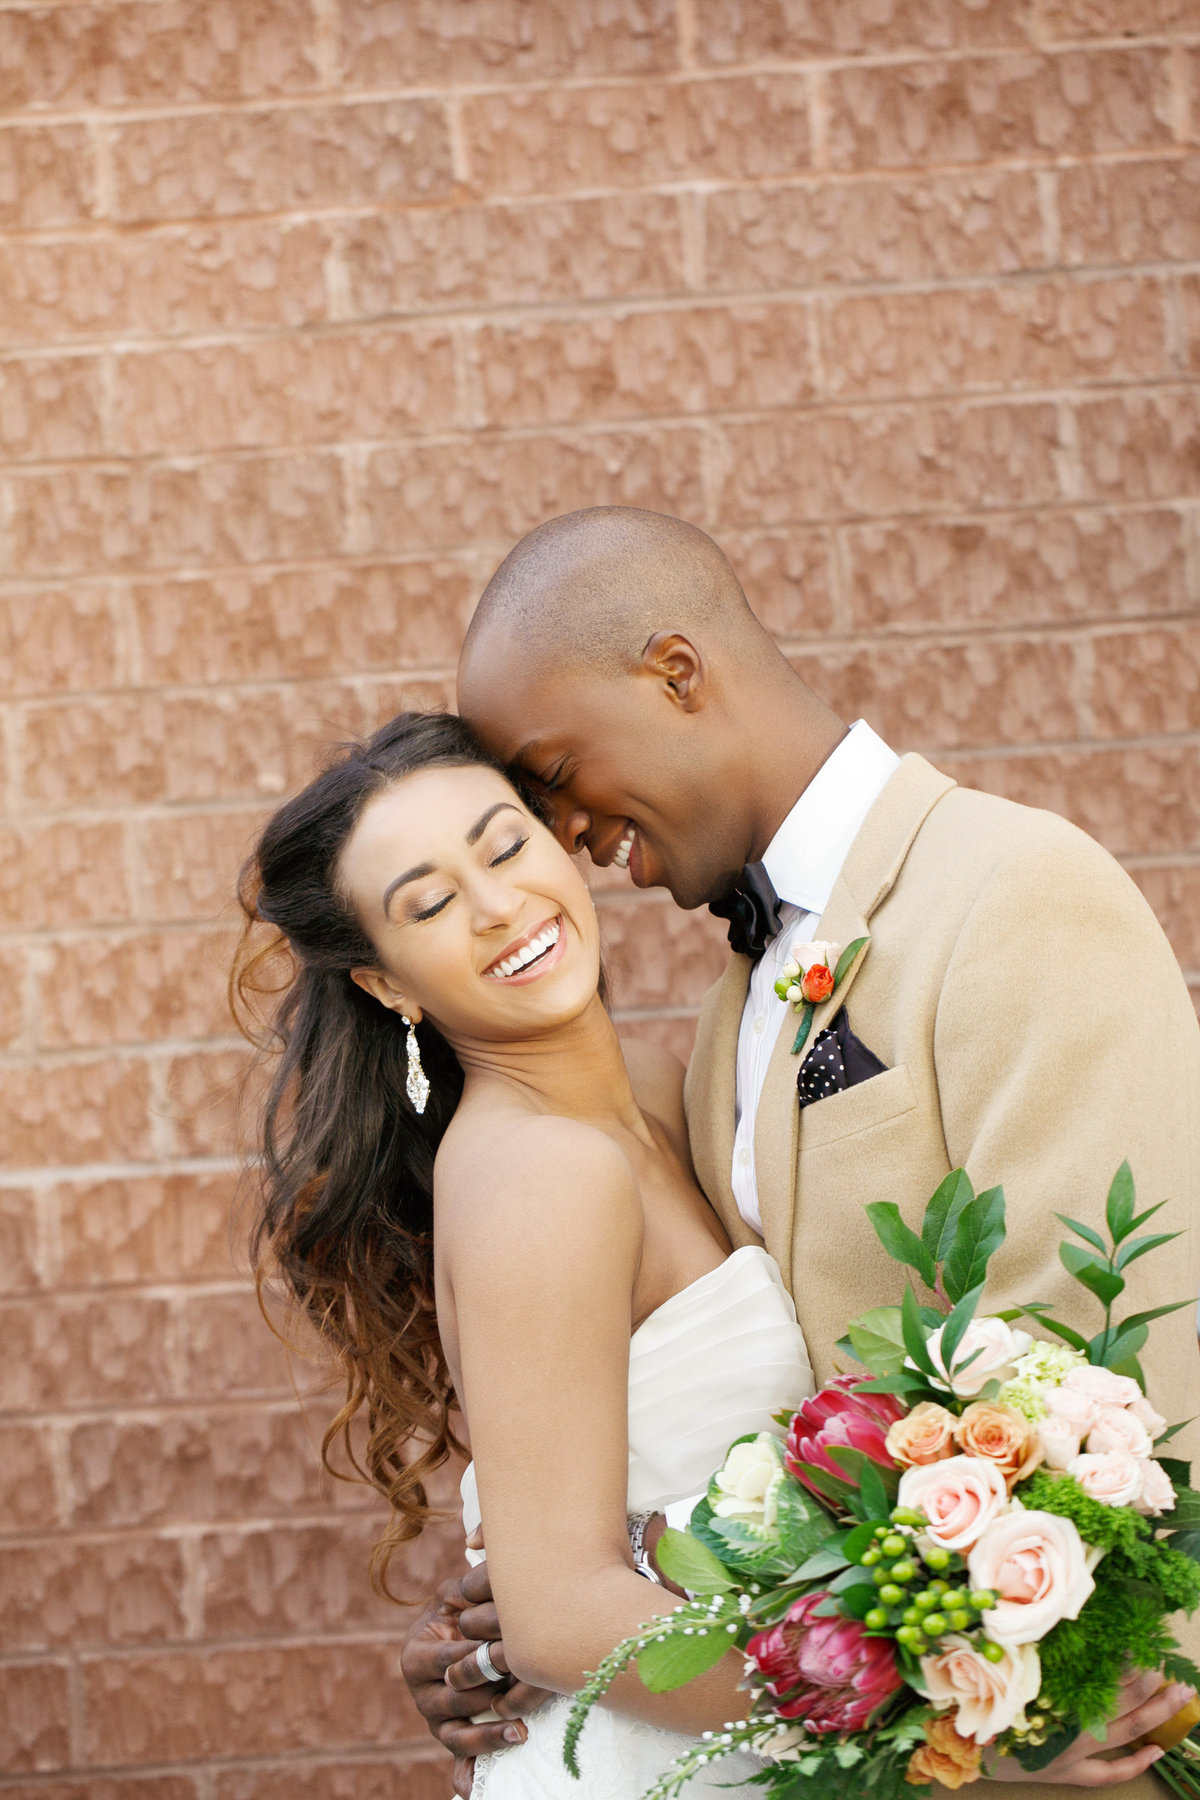 AmyAnaiz__Intimate_Elopement_Maison_May_Dekalb_Brooklyn_New_York_001